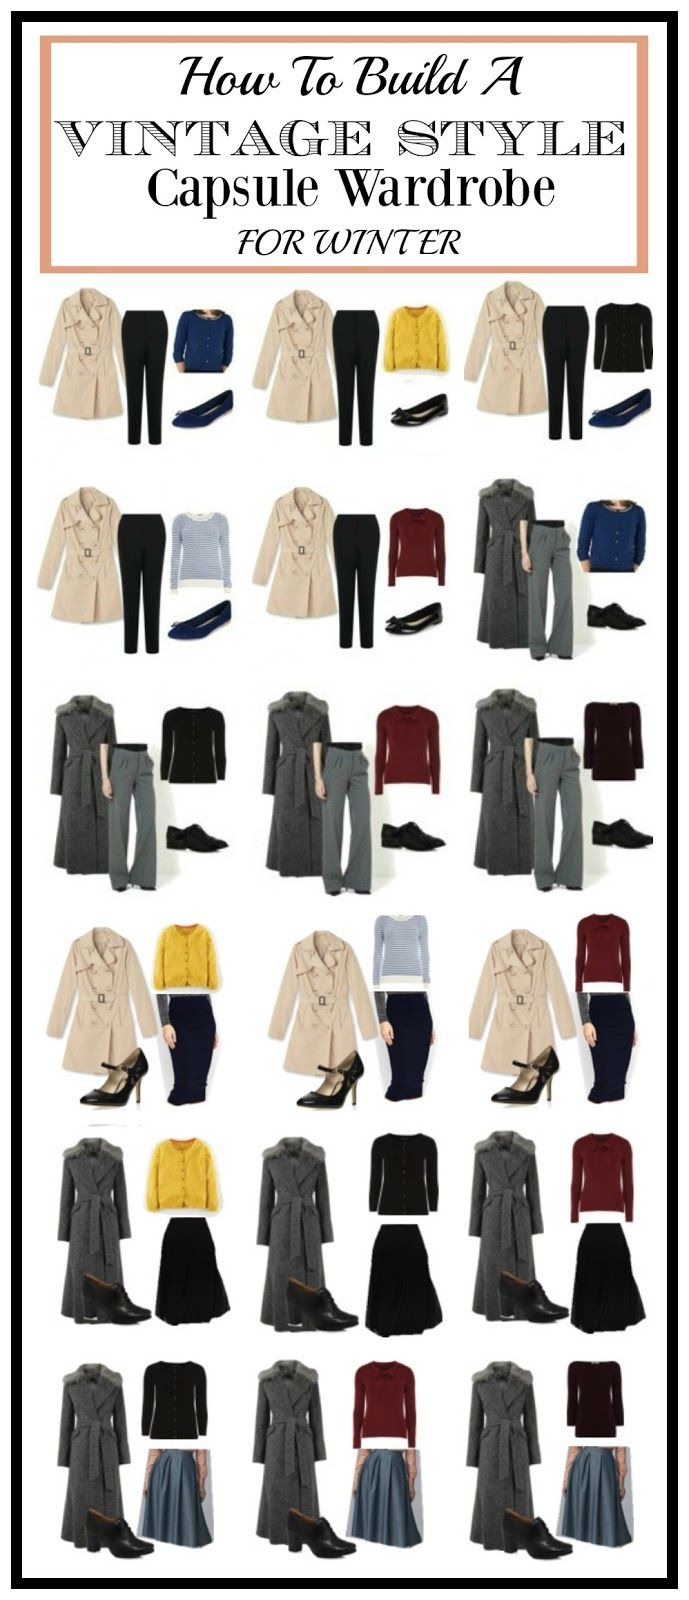 How to build a vintage style capsule wardrobe for winter - Vintagen Blog